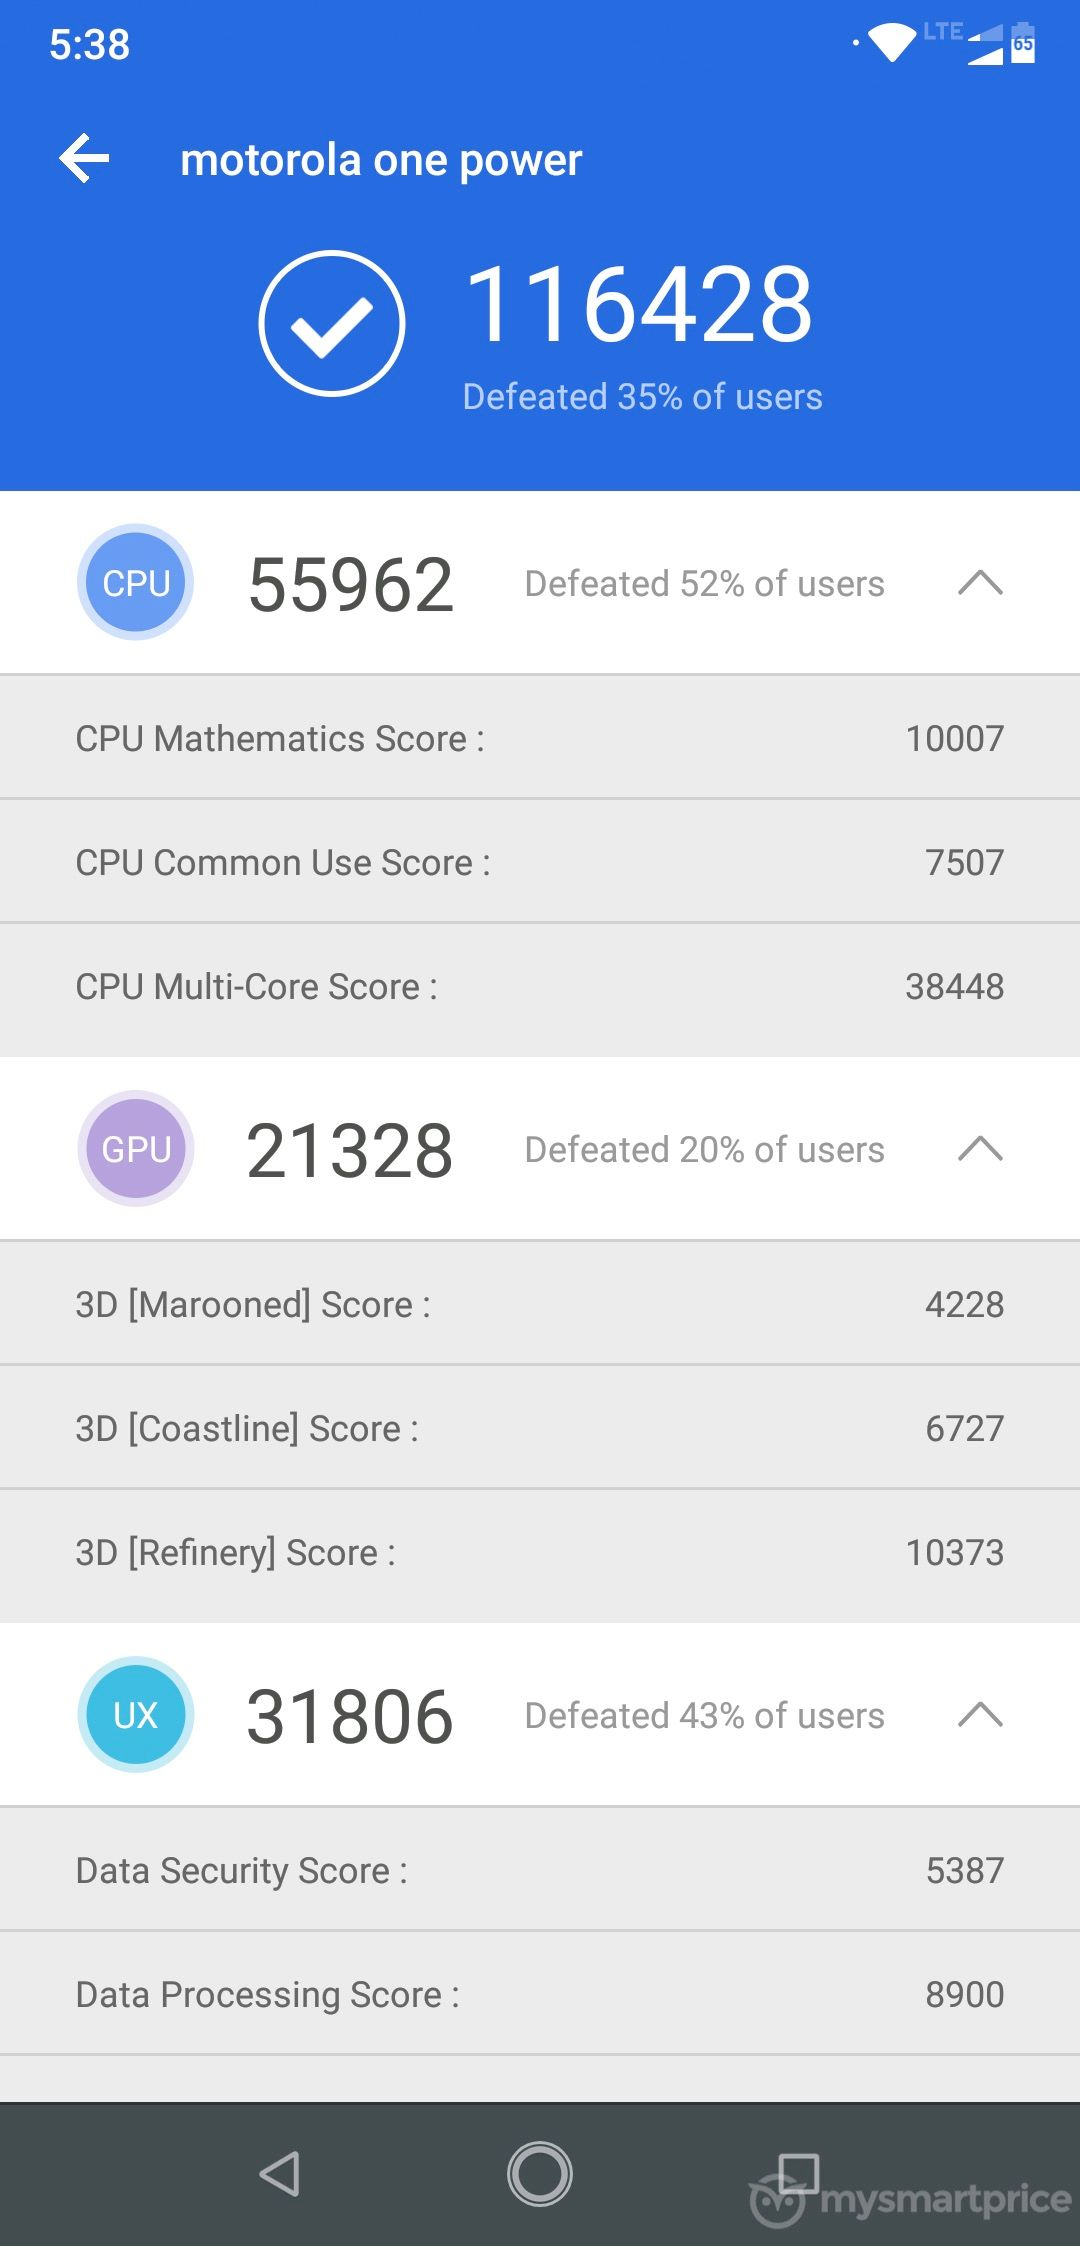 Motorola Moto One Power AnTuTu Benchmark